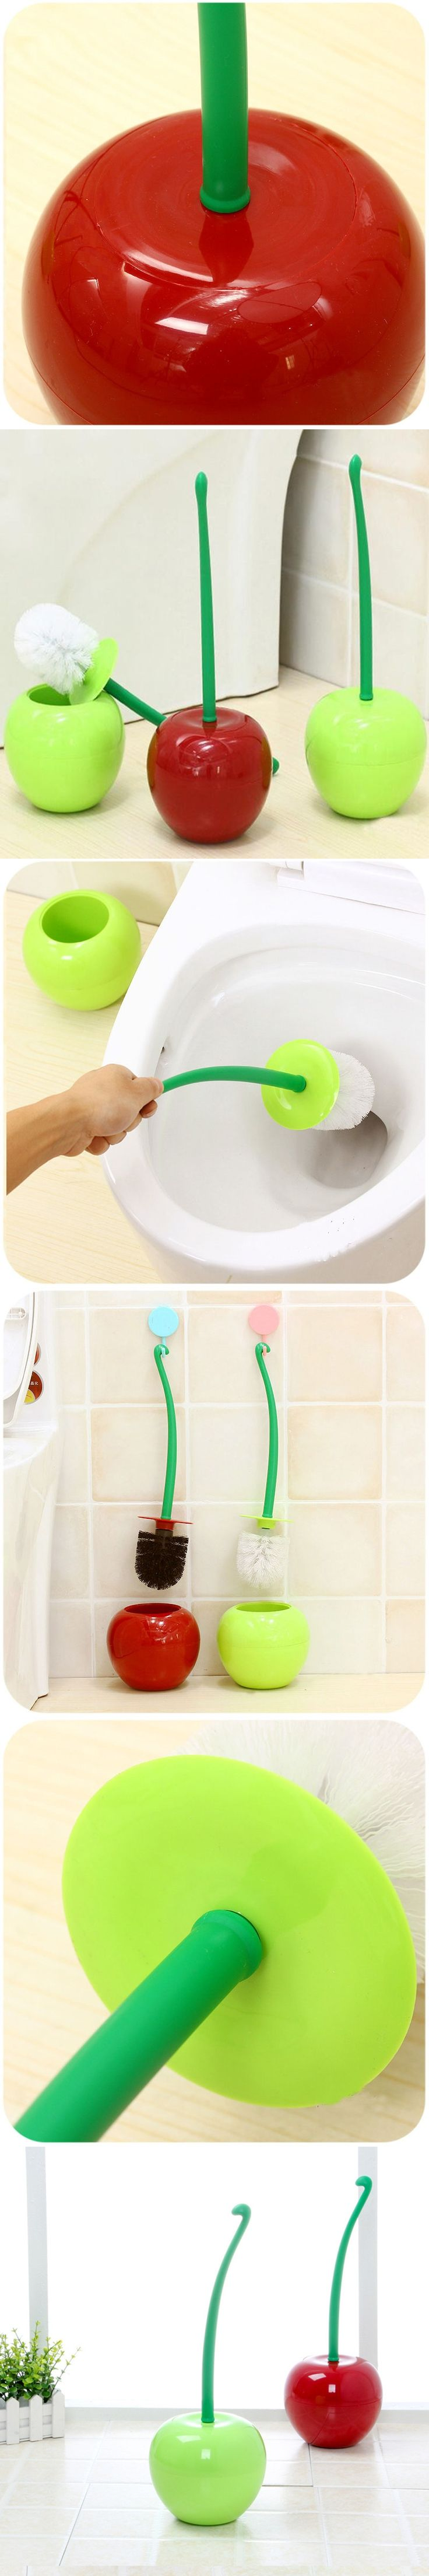 1set High quality lovely cherry shaped toilet brush with holder easy to clean toilet brush home bathroom product,Free shipping.